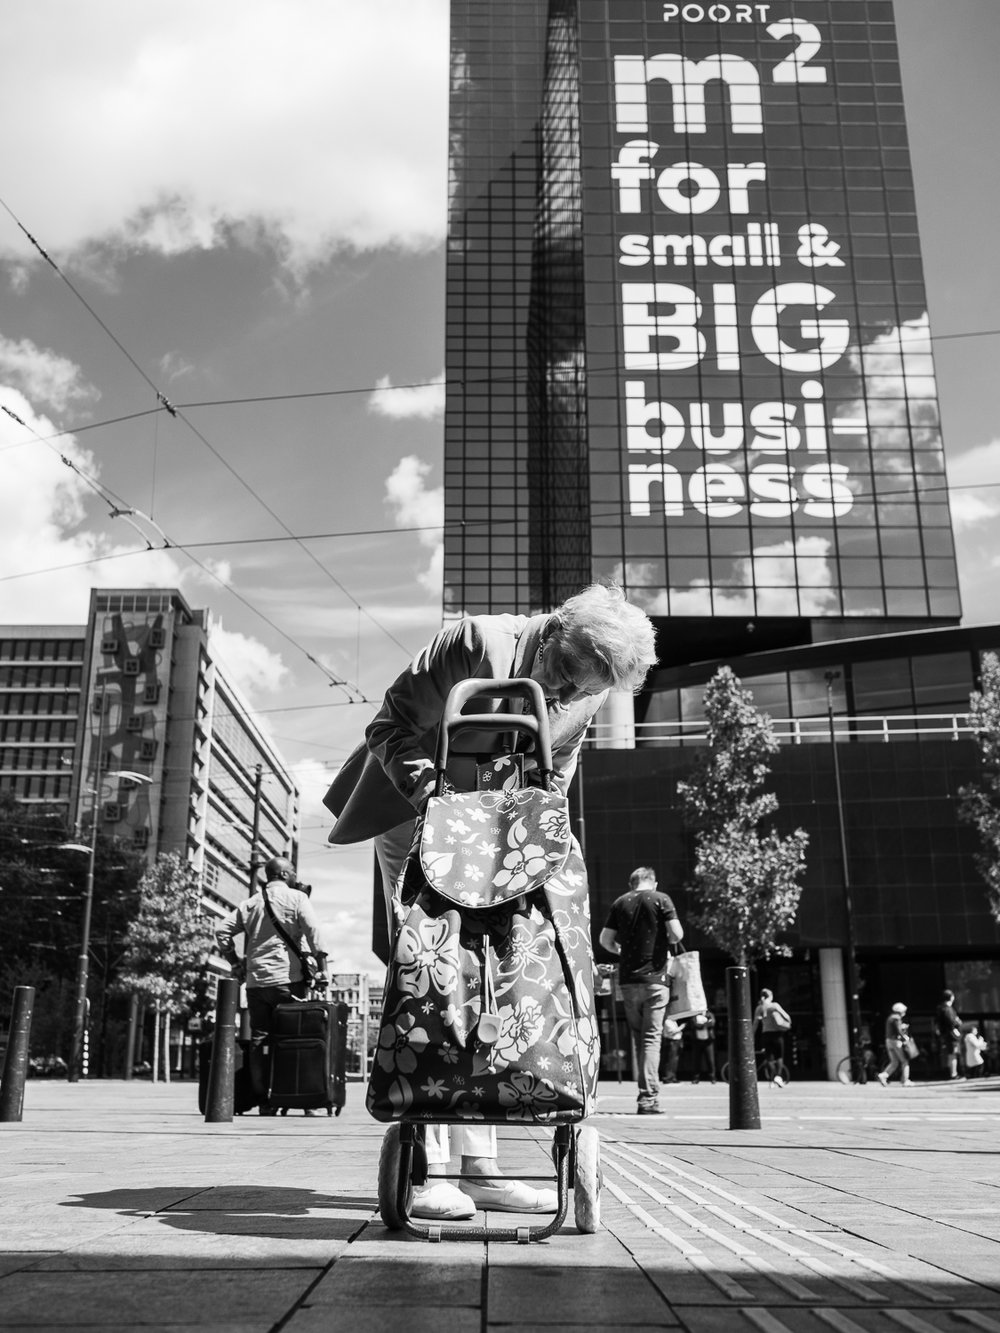 I made this photo in august 2018 near Rotterdam Central Station. This nice woman was busy getting something out of her trolley. In a split second I saw the text on the building behind her. Lucky me to create a funny combination between the text and her small trolley business.  Olympus OM-D E-M1 Mark 2 with Olympus M.ZUIKO 17mm 1:1.2 PRO